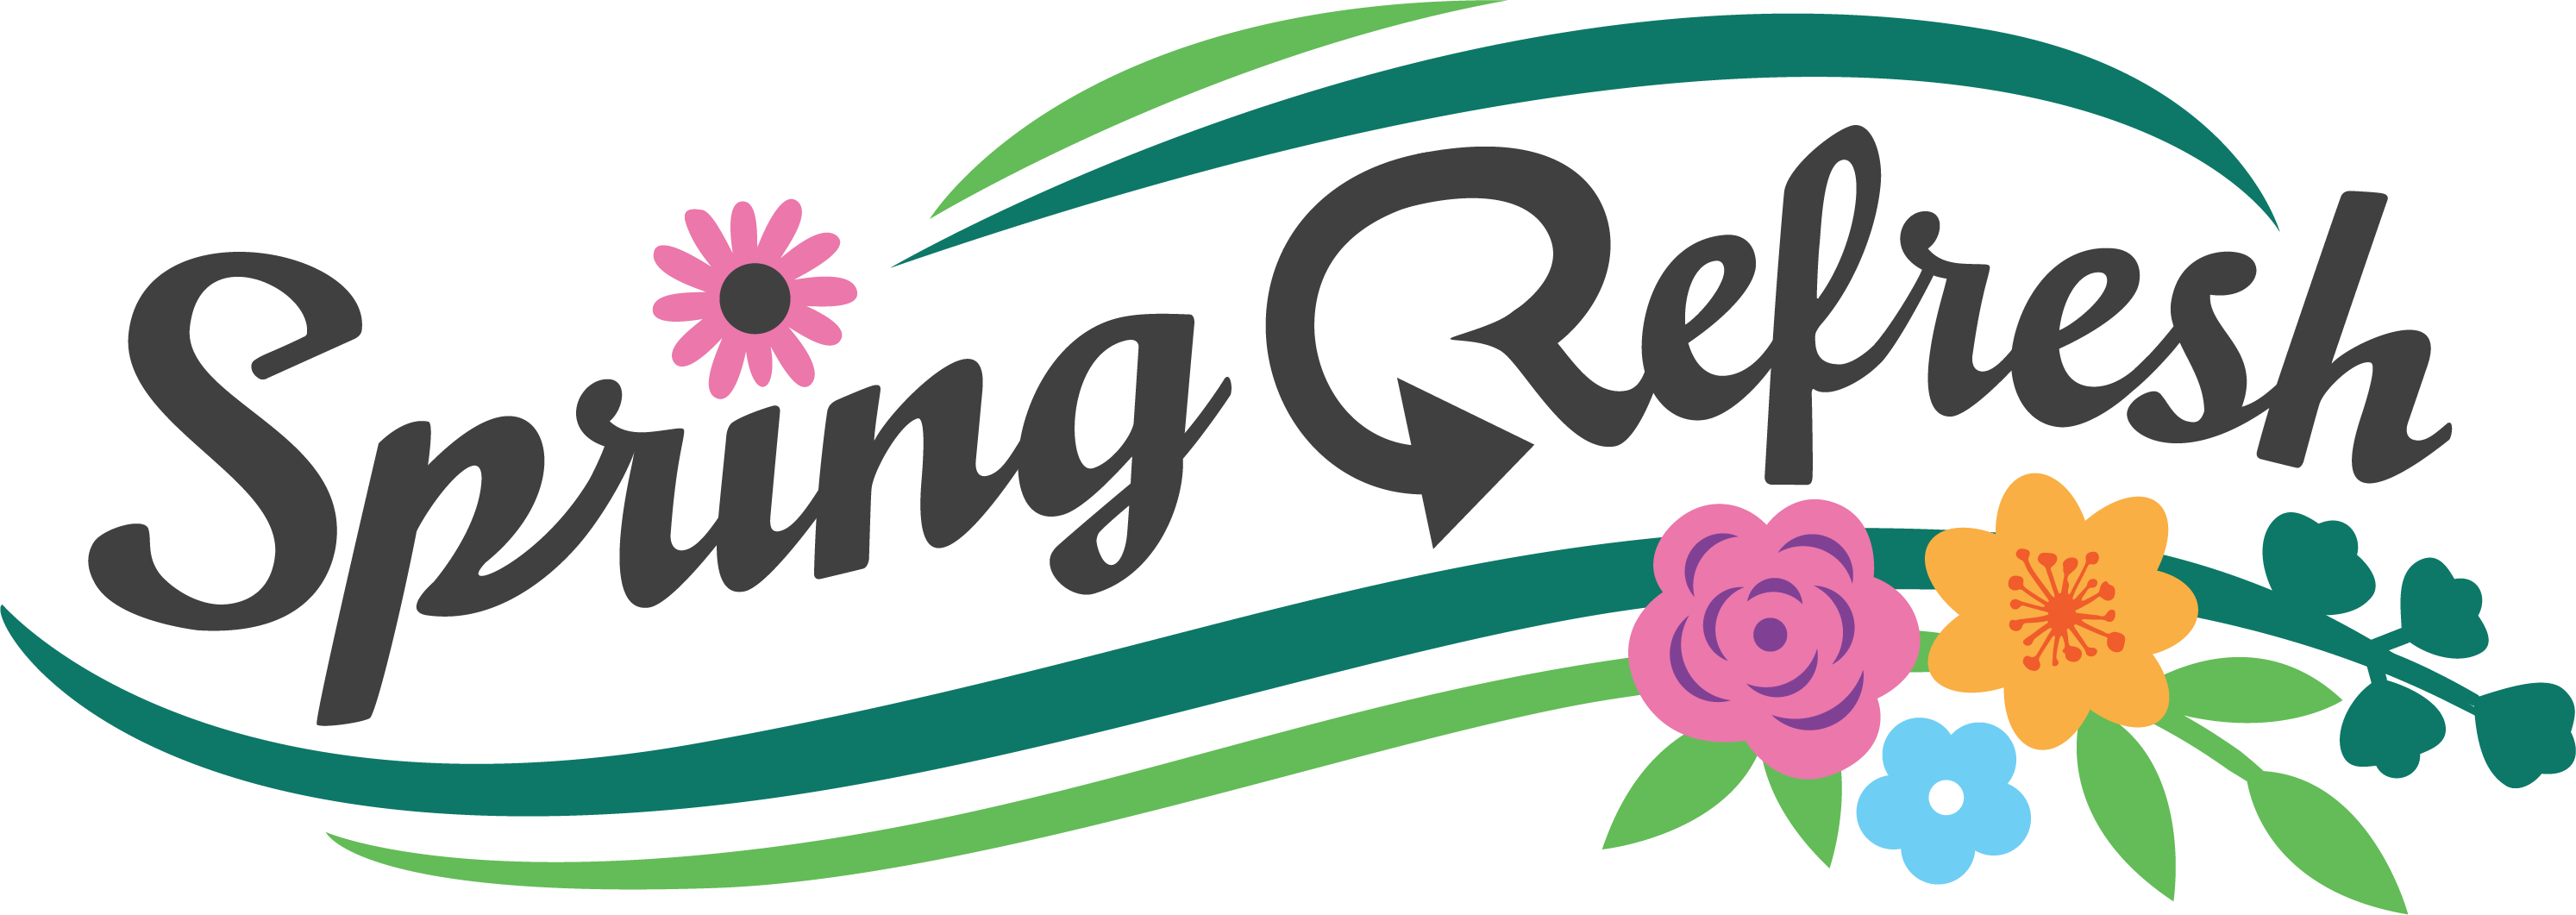 Spring Refresh logo